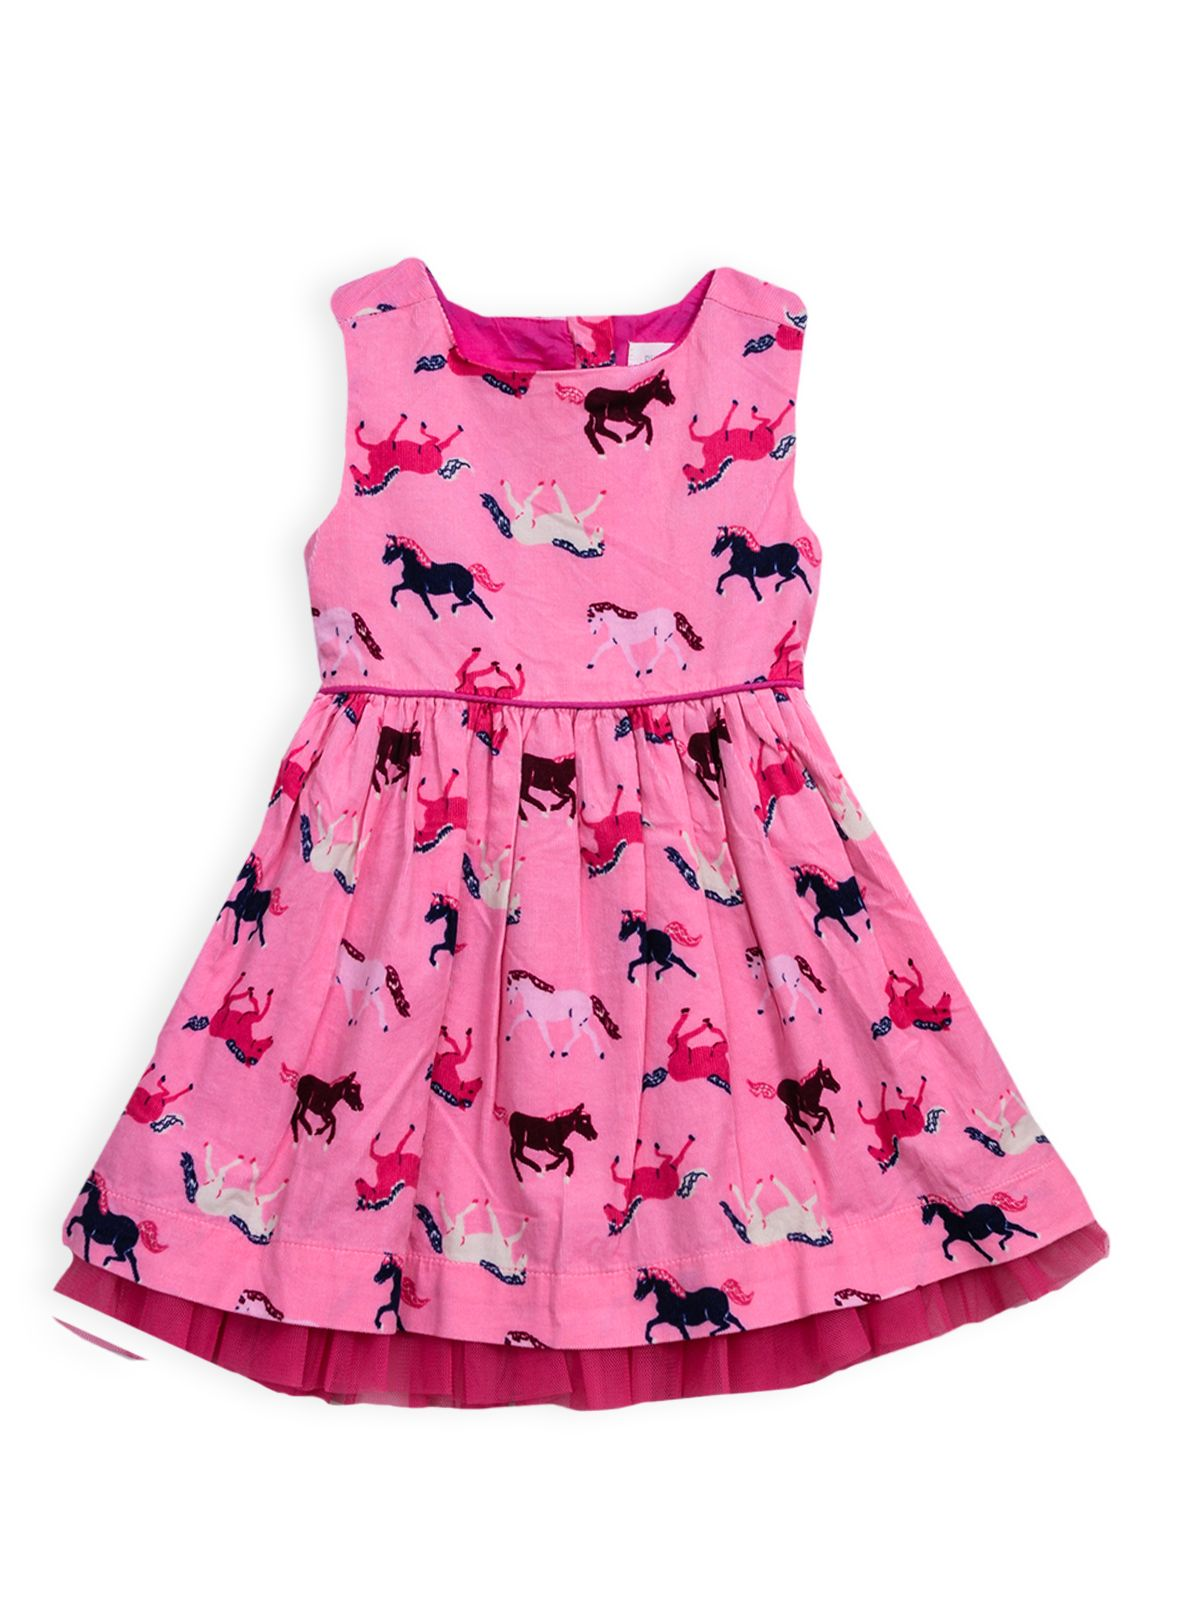 Girls pony print dress